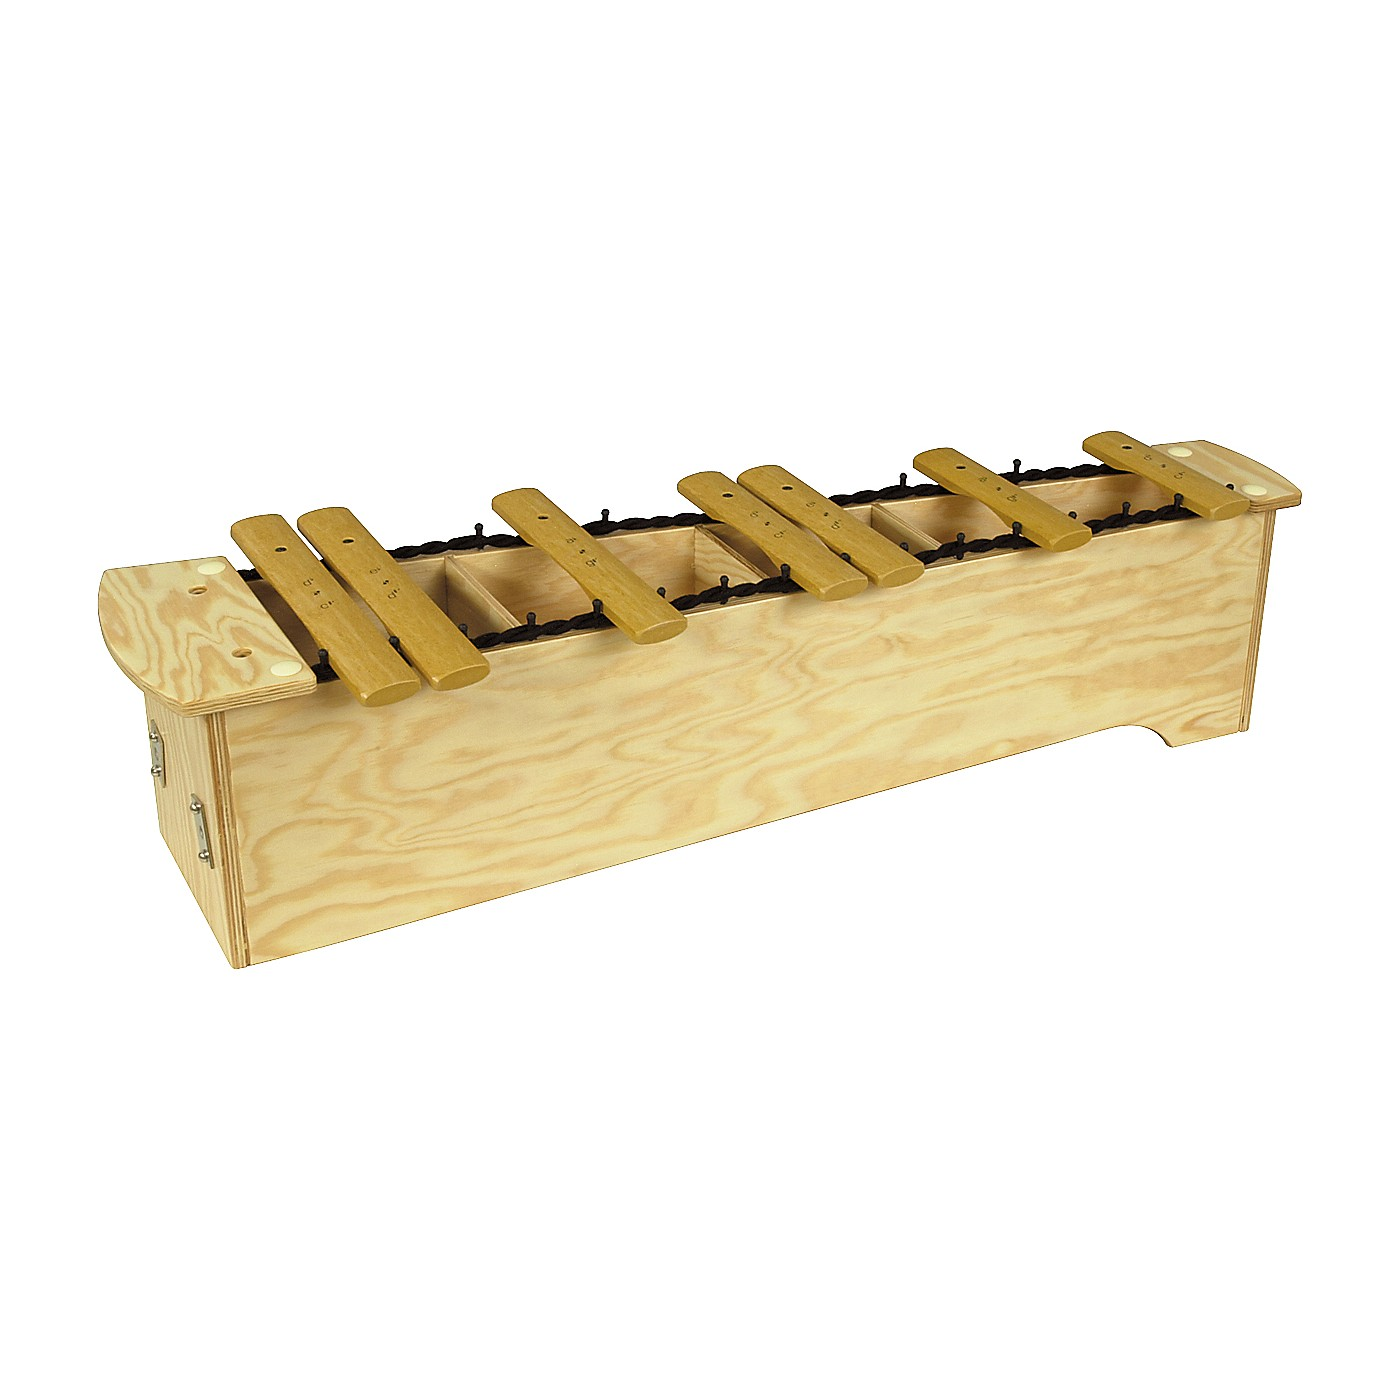 Sonor Orff Palisono Tenor-Alto Xylophone Chromatic Add-On thumbnail